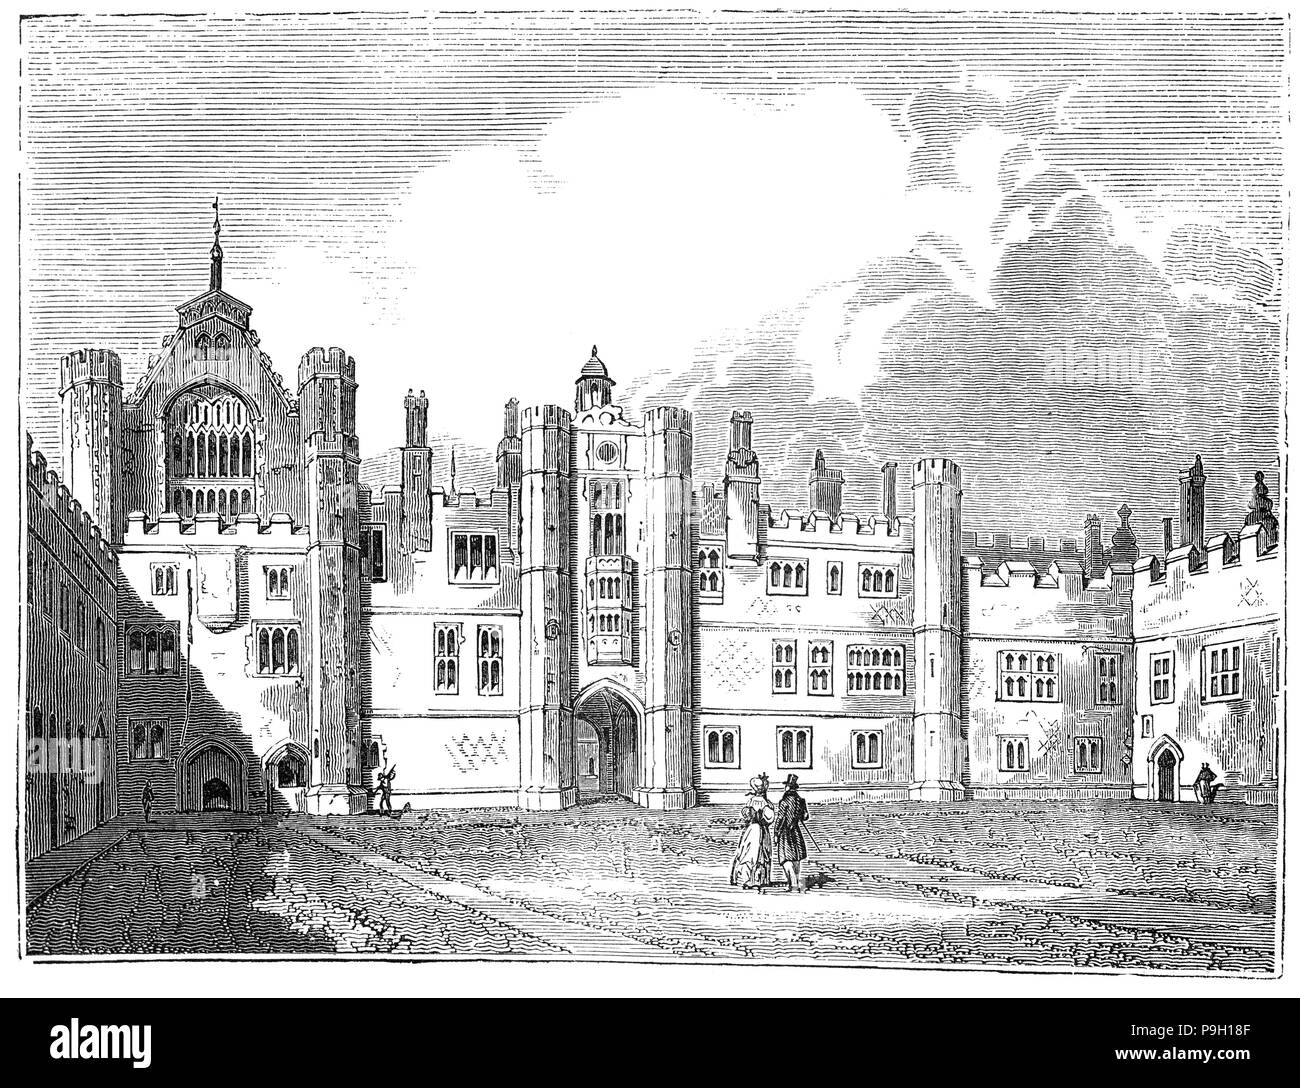 The Middle Quadrangle of Hampton Court Palace in the borough of Richmond upon Thames, south west and upstream of central London on the River Thames. Building of the palace began in 1515 for Cardinal Thomas Wolsey, a favourite of King Henry VIII. In 1529, as Wolsey fell from favour, the Cardinal gifted the palace to the King to check his disgrace; Henry VIII later enlarged it. Along with St James's Palace, it is one of only two surviving palaces out of the many owned by King Henry VIII. - Stock Image